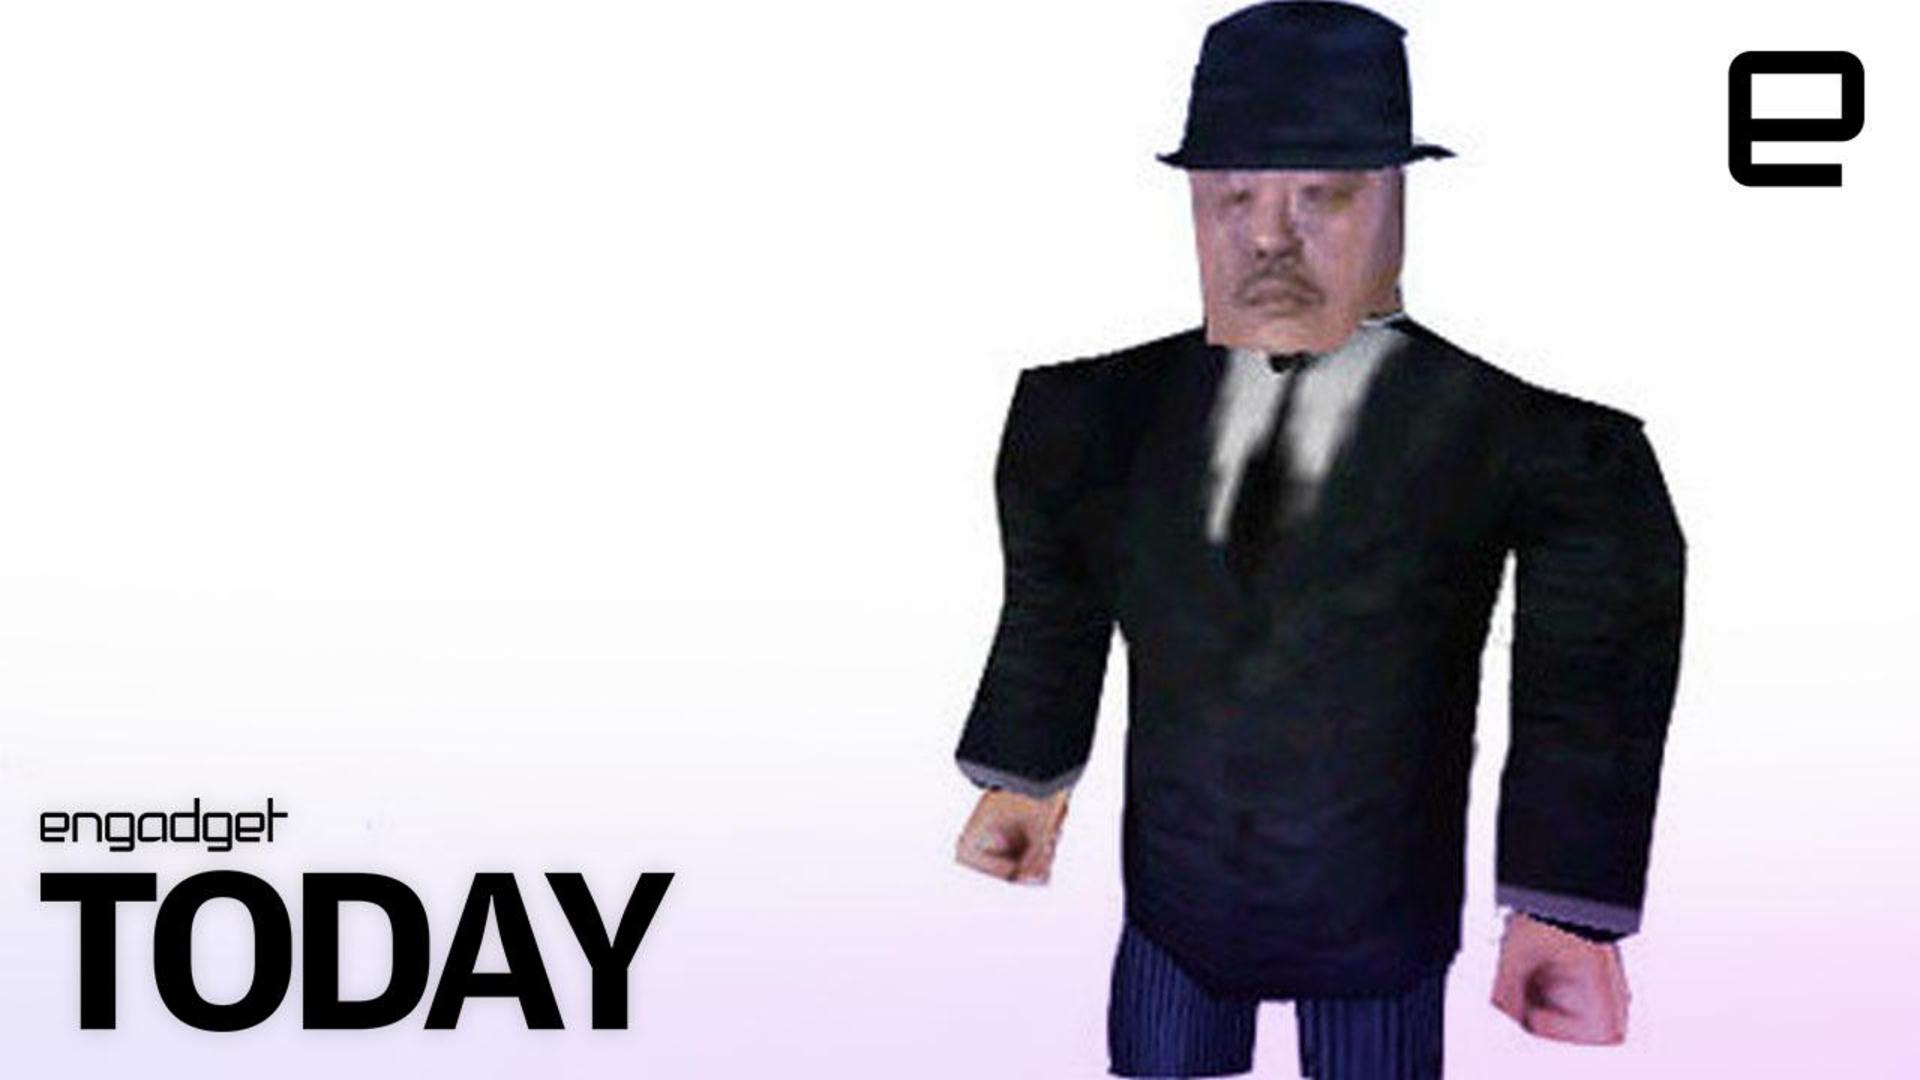 It's official: Playing as Oddjob in 'GoldenEye' was cheating